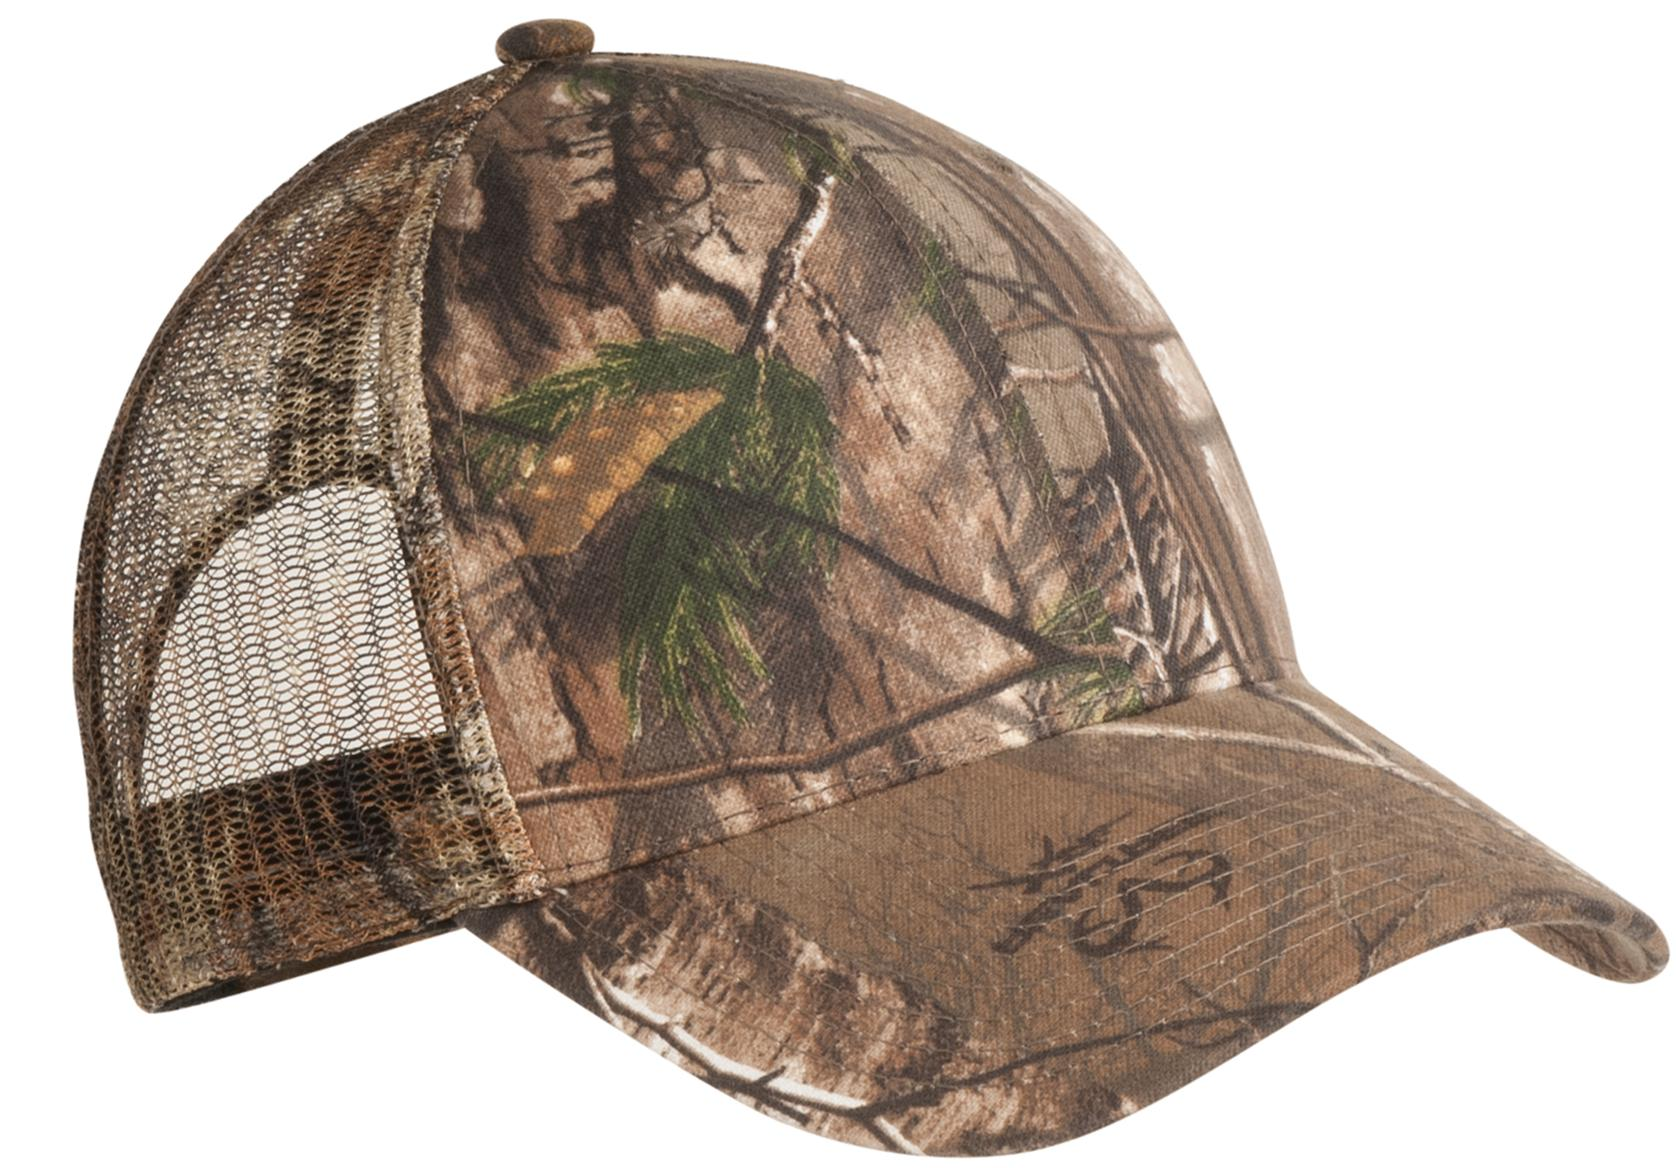 Port Authority ®  Pro Camouflage Series Cap with Mesh Back.  C869 - Realtree Xtra